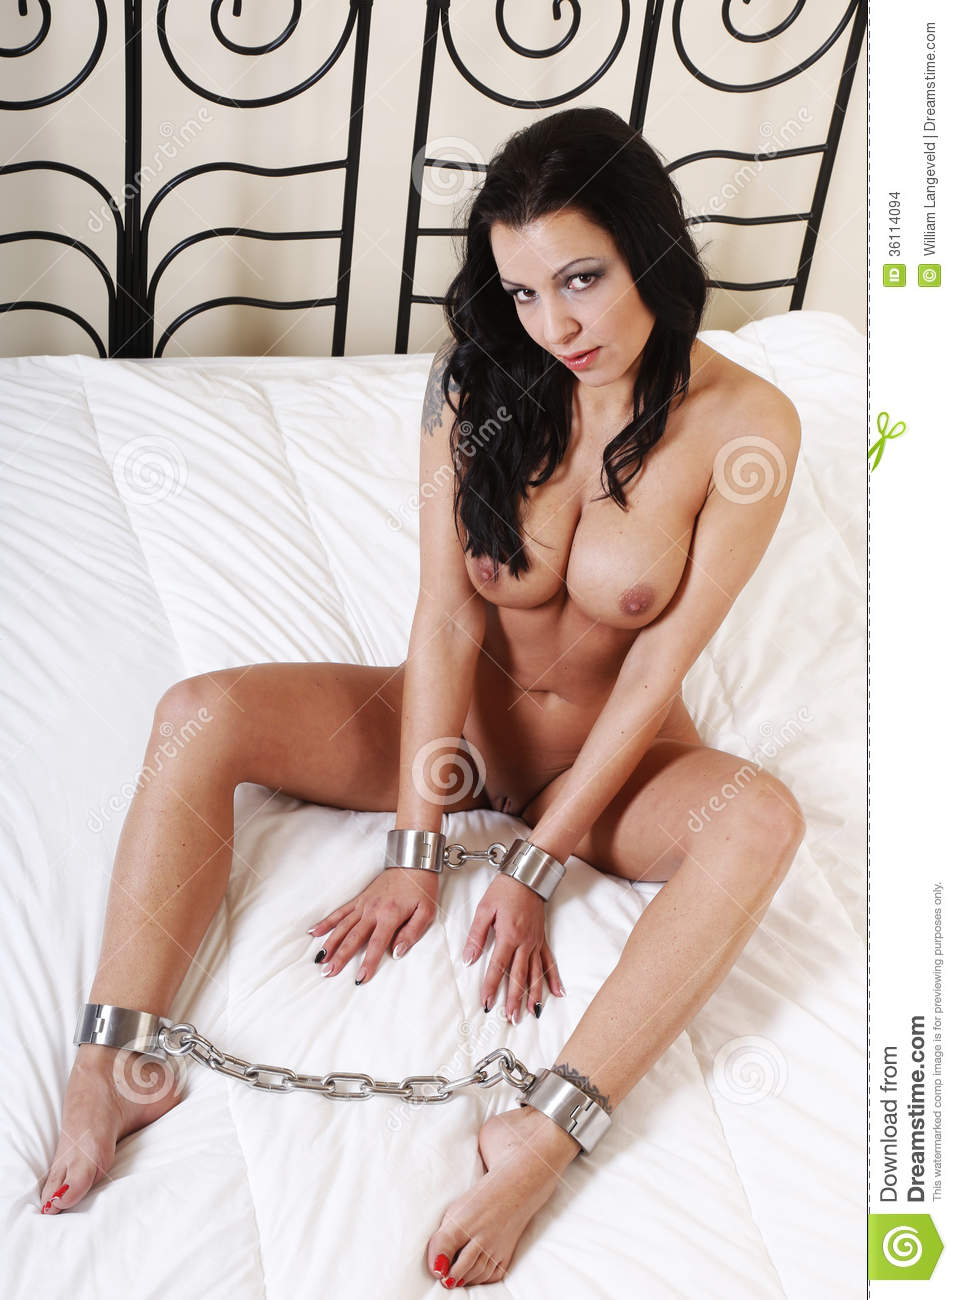 Beautful Nude Or Naked Woman Handcuffed Stock Photo -3041